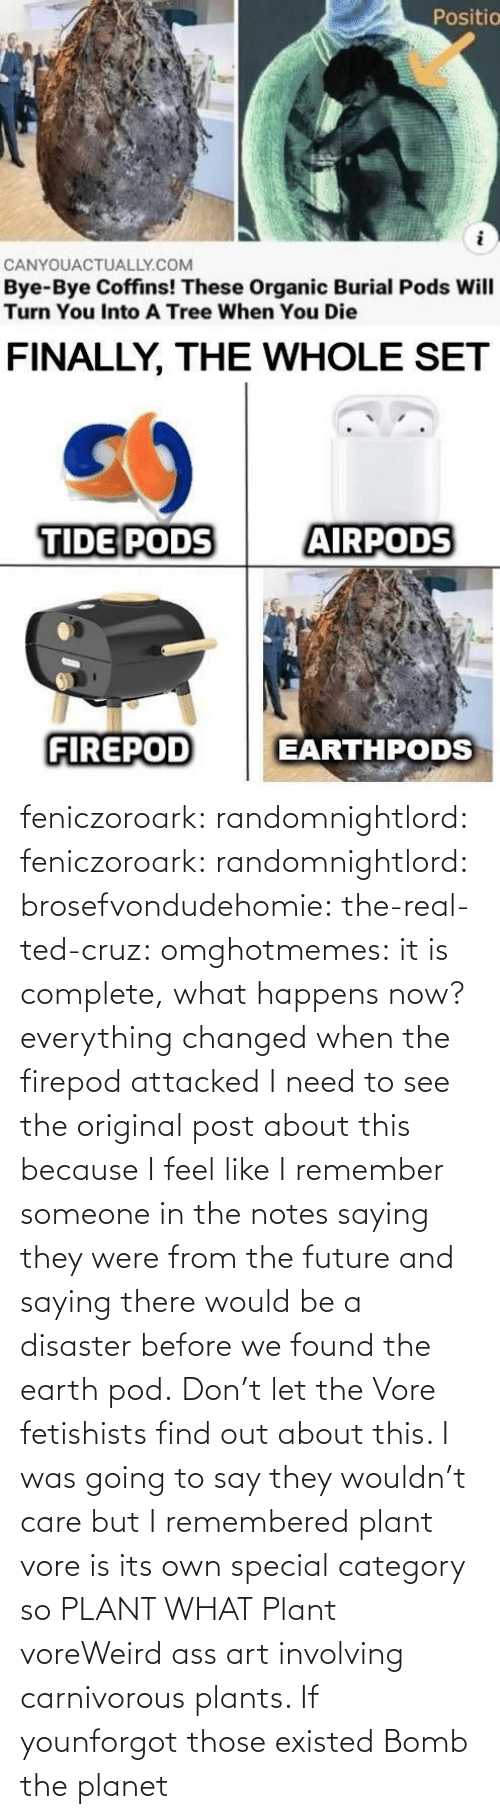 bomb: feniczoroark:  randomnightlord:  feniczoroark:  randomnightlord:  brosefvondudehomie: the-real-ted-cruz:  omghotmemes: it is complete, what happens now? everything changed when the firepod attacked    I need to see the original post about this because I feel like I remember someone in the notes saying they were from the future and saying there would be a disaster before we found the earth pod.    Don't let the Vore fetishists find out about this.    I was going to say they wouldn't care but I remembered plant vore is its own special category so   PLANT WHAT   Plant voreWeird ass art involving carnivorous plants. If younforgot those existed   Bomb the planet